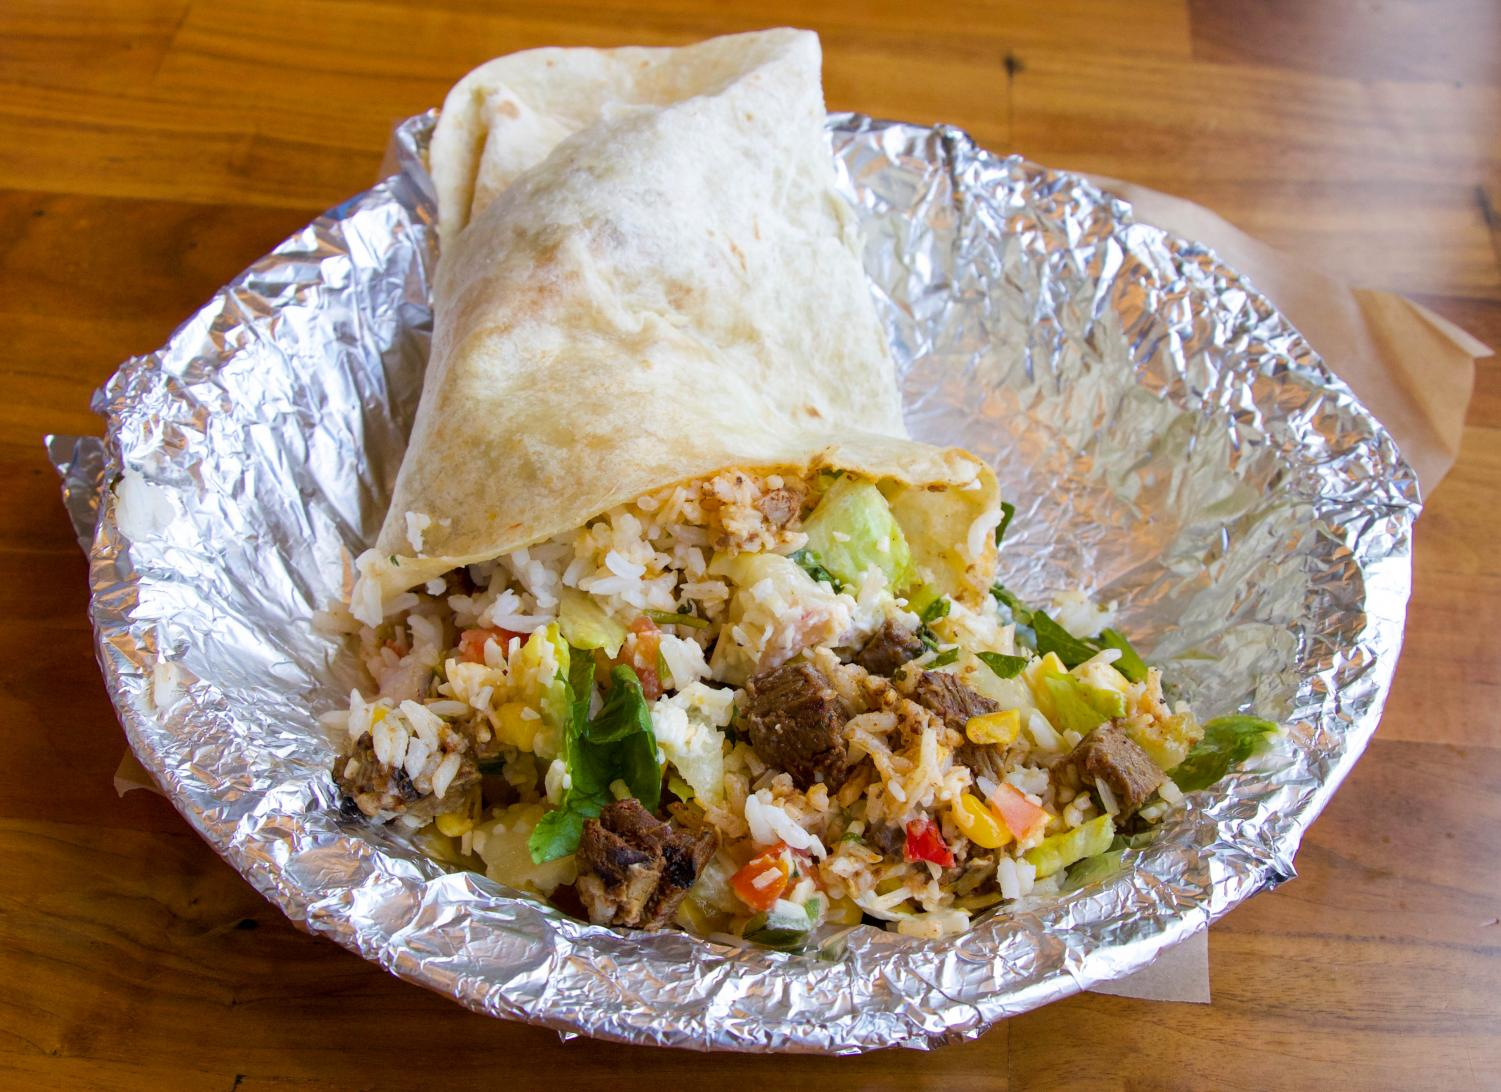 A make your own burrito sits in an aluminum tray at Qdoba on 135th and Metcalf.